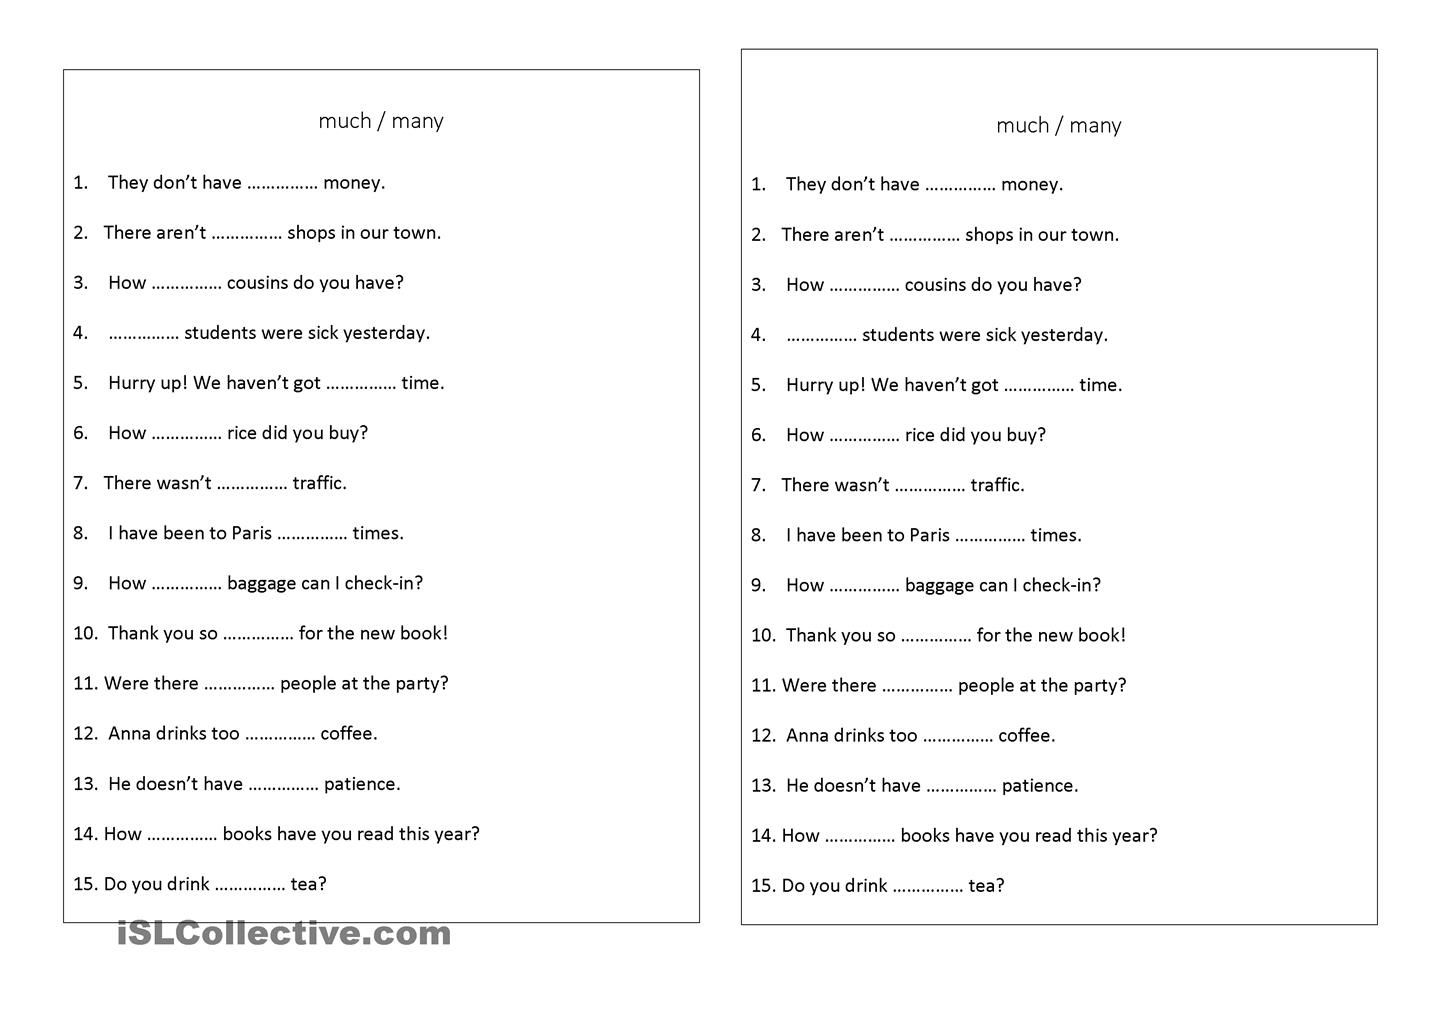 Much Many Exercise English Worksheets For Kids Common Core Math Worksheets Preschool Printable [ 1018 x 1440 Pixel ]